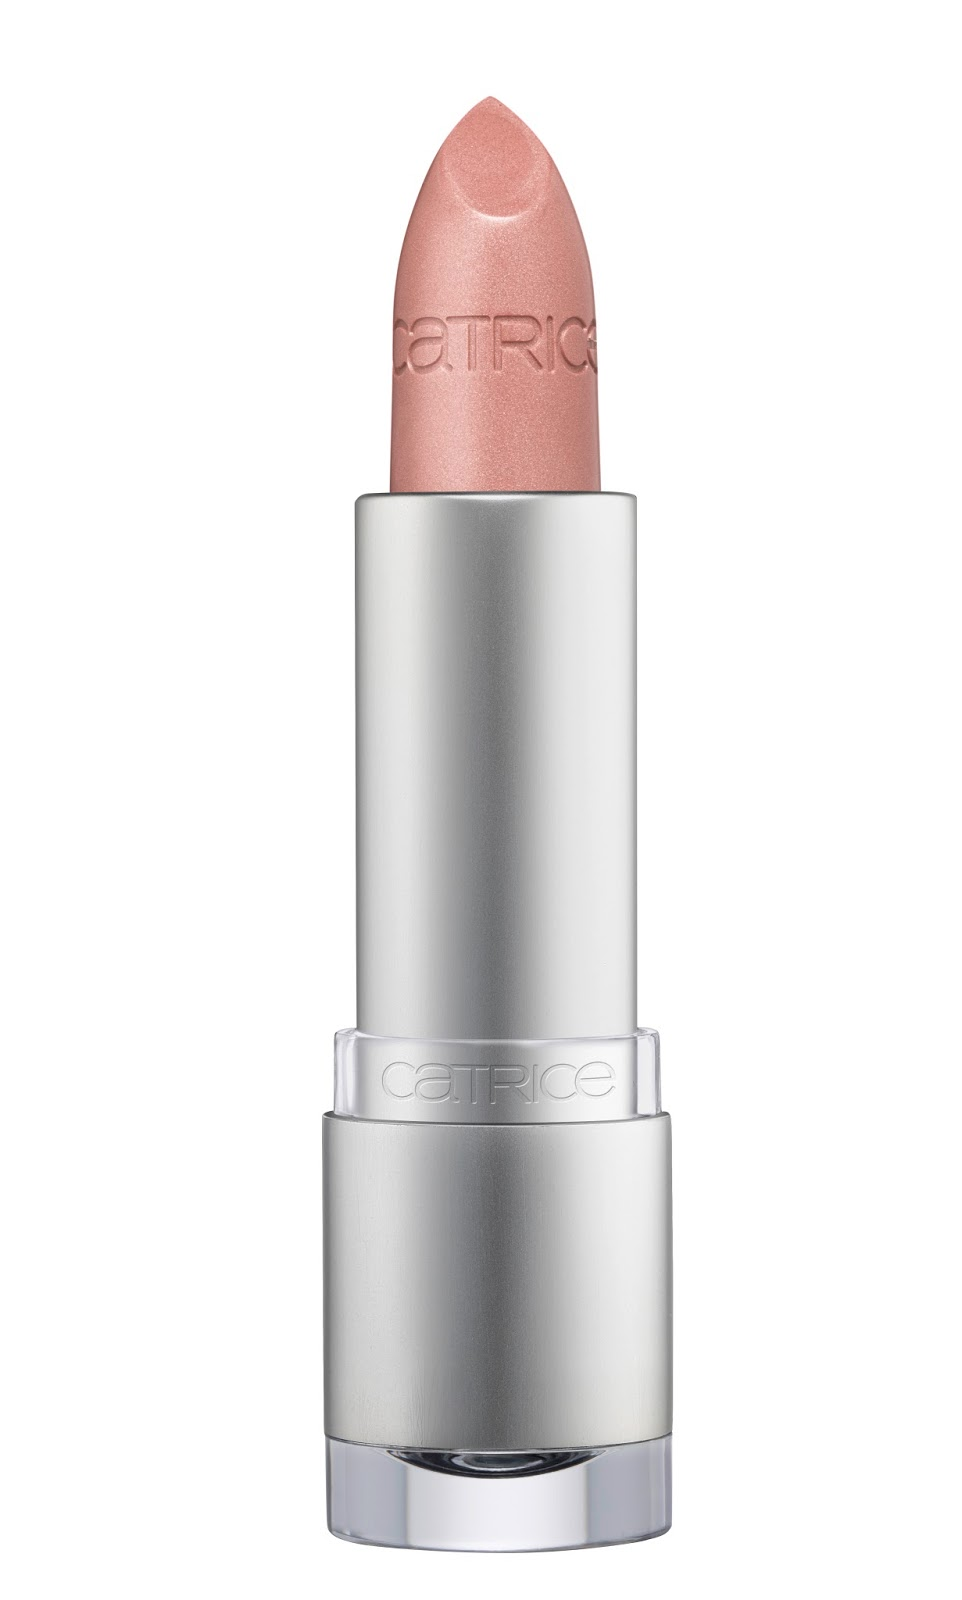 Catrice - Luminous Lips Lipstick